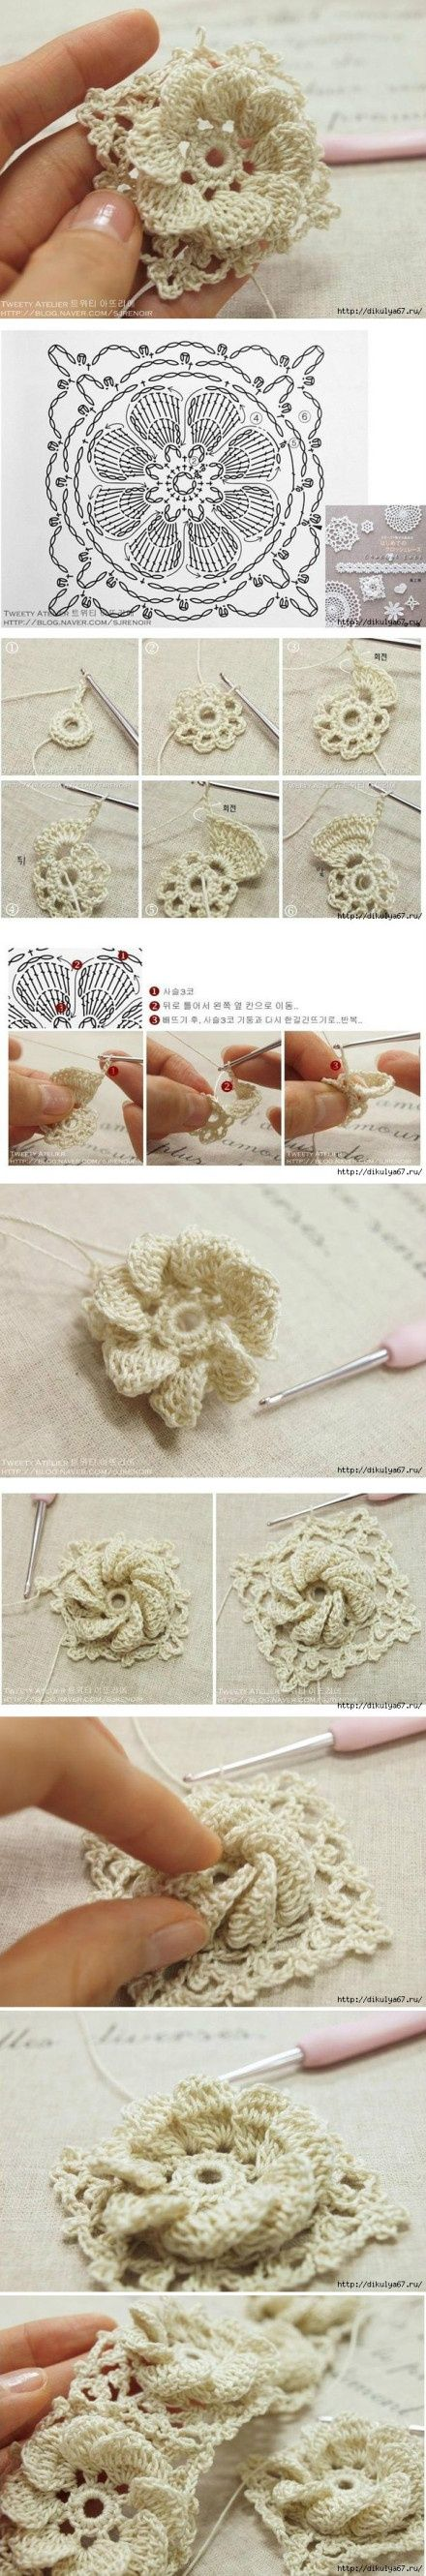 "#Crochet_Tutorial - ""This pretty flower design is surrounded by crochet to make it a useful granny square. Can be used with other squares or all together for a bag or pillow cover perhaps"" Enjoy from #KnittingGuru http://www.KnittingGuru.etsy.com"